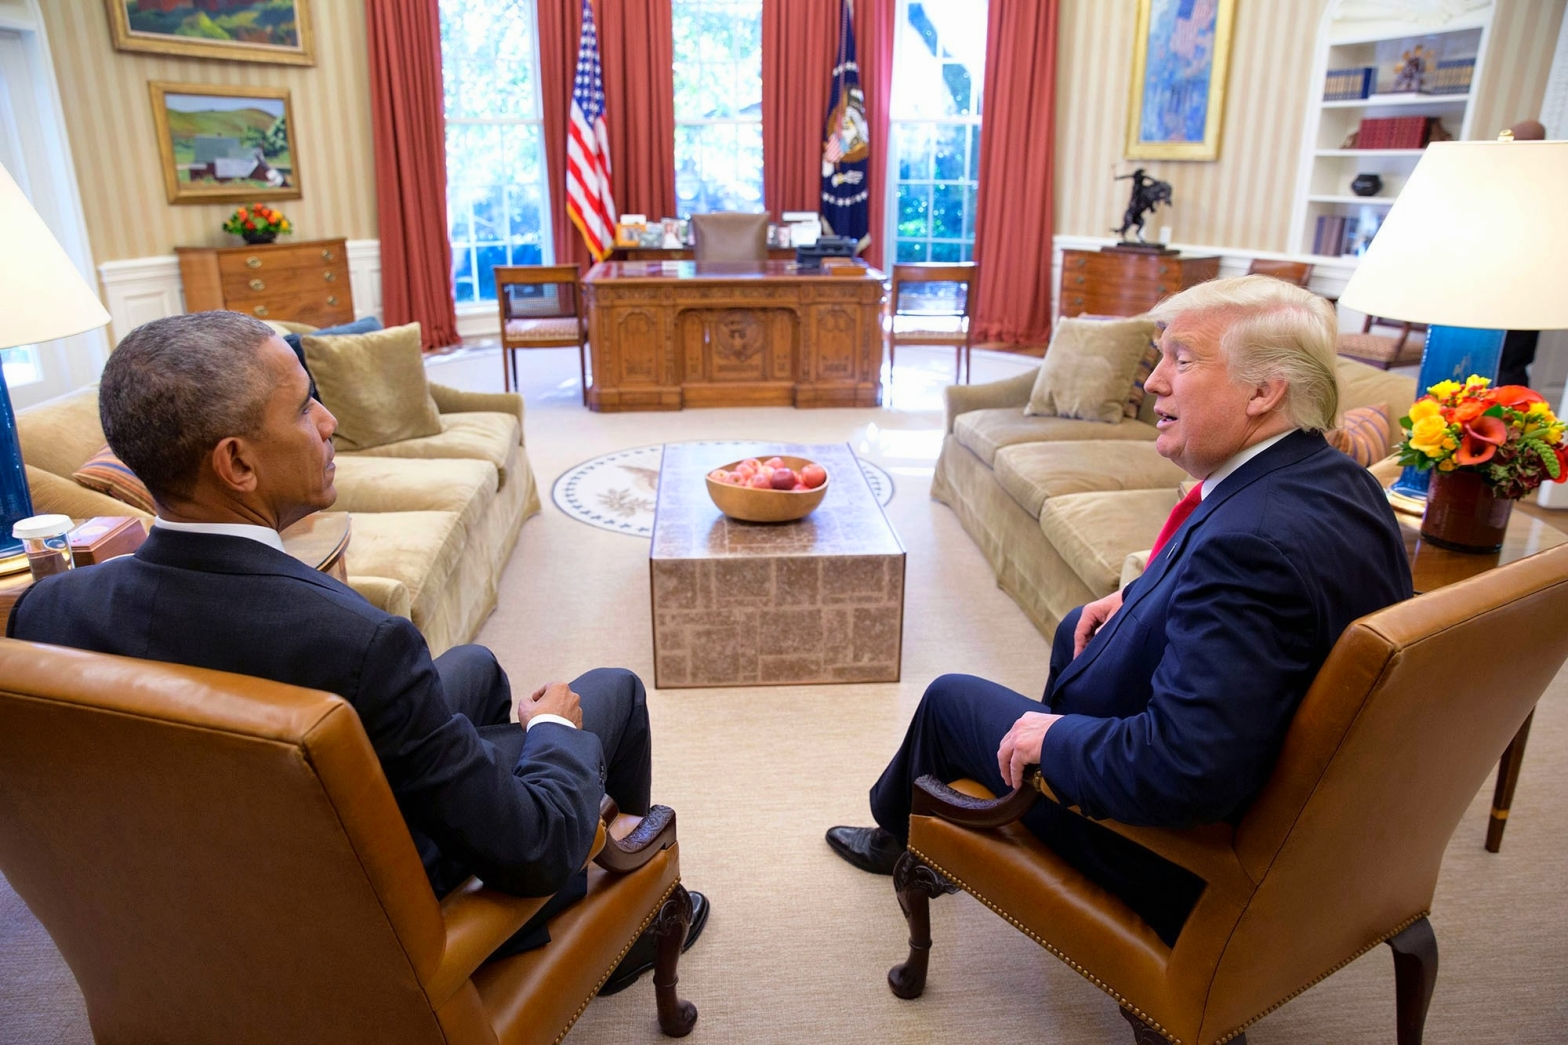 Presidents of the United States, Donald Trump, Obama, sitting together